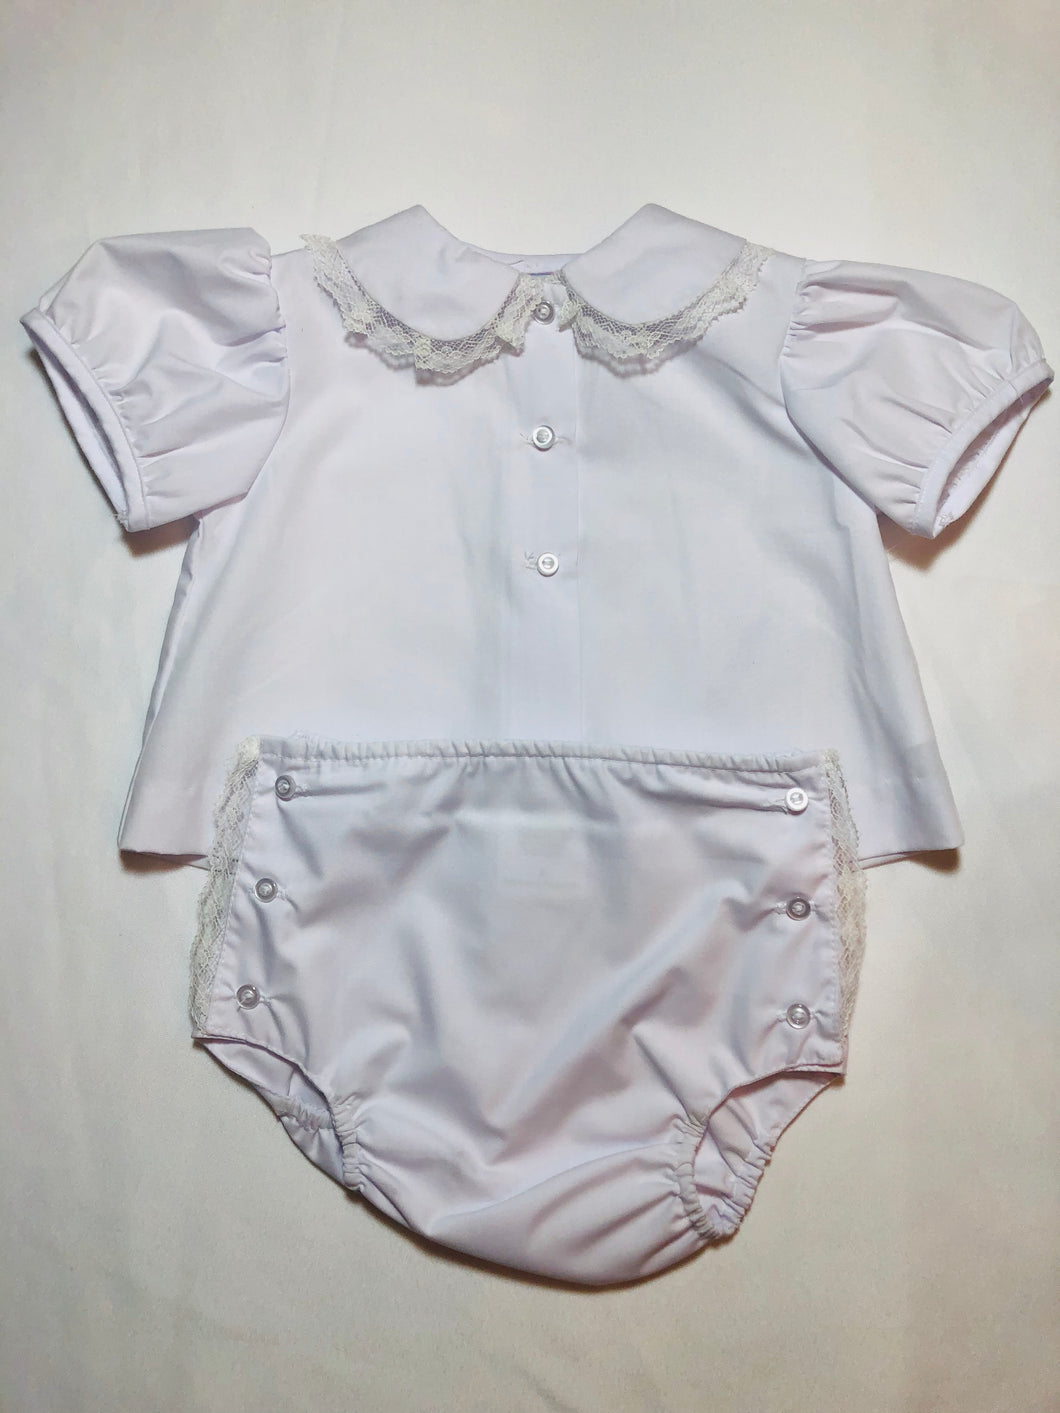 White Diaper Set w/Lace Collar - Posh Tots Children's Boutique